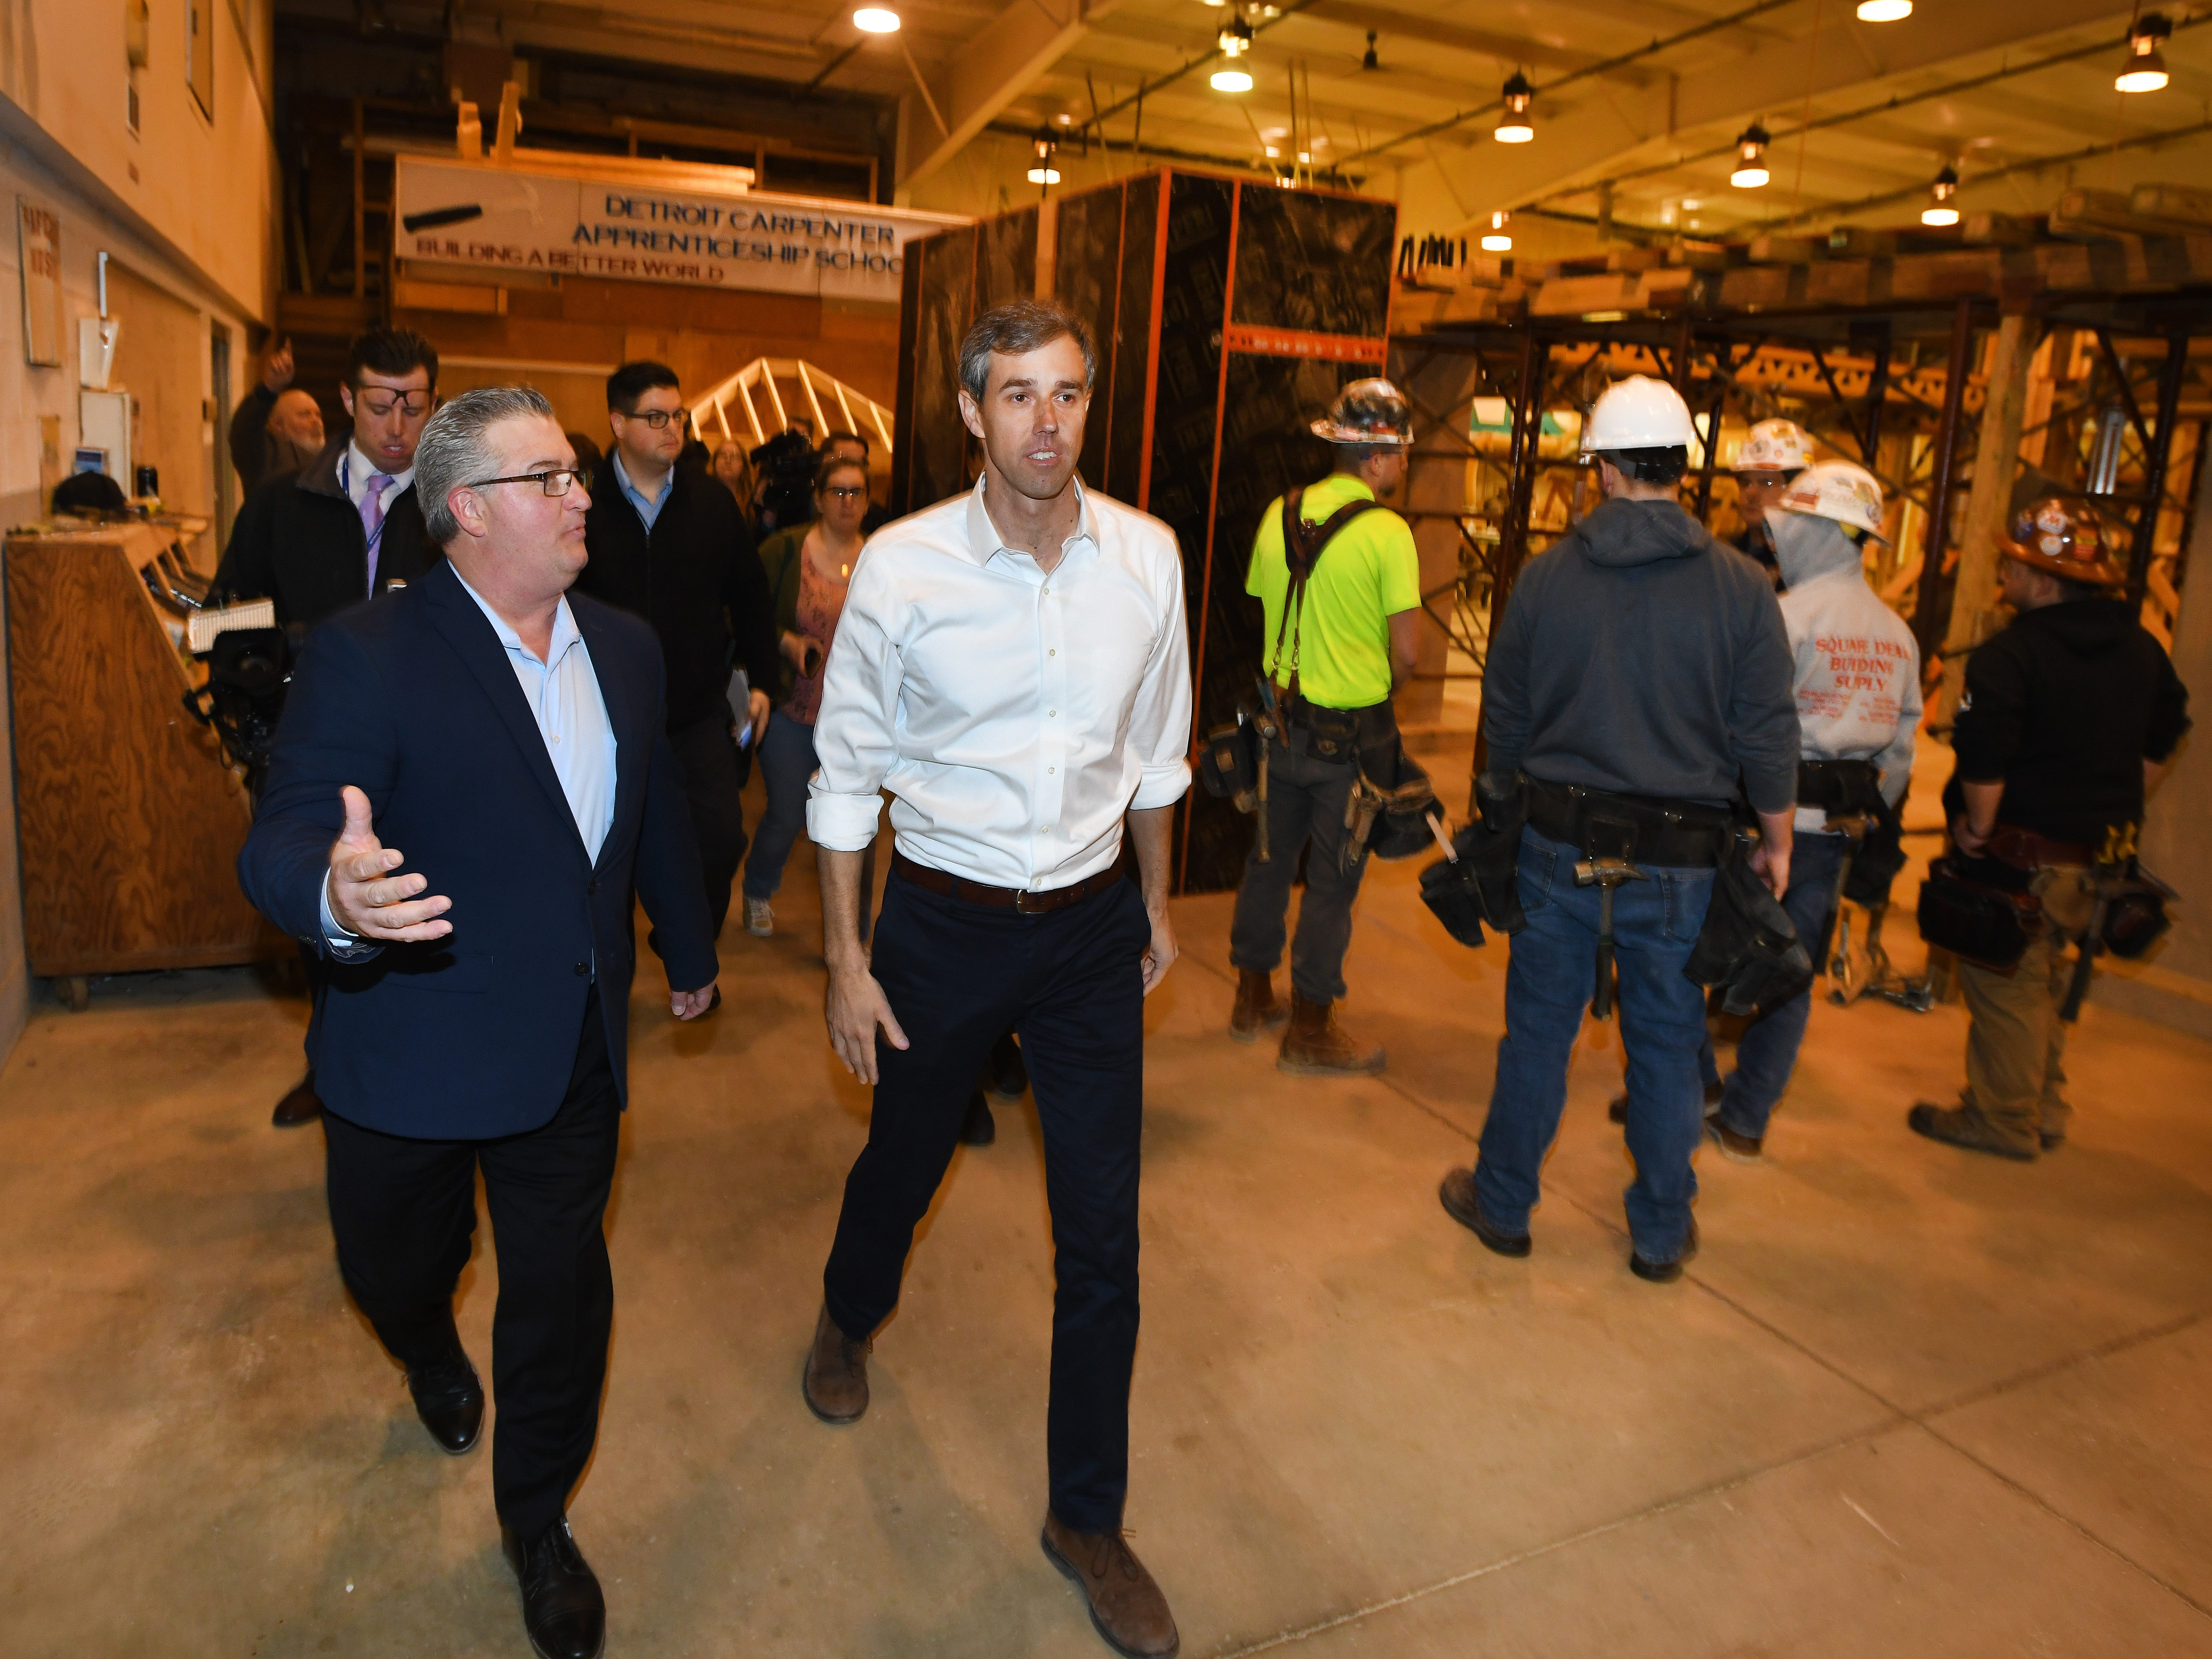 Michigan Regional Council of Carpenters President Tom Lutz shows Democratic U.S. presidential candidate Beto O'Rourke around the Detroit Carpenters Training Center during a tour in Ferndale, Michigan on March 18, 2019.